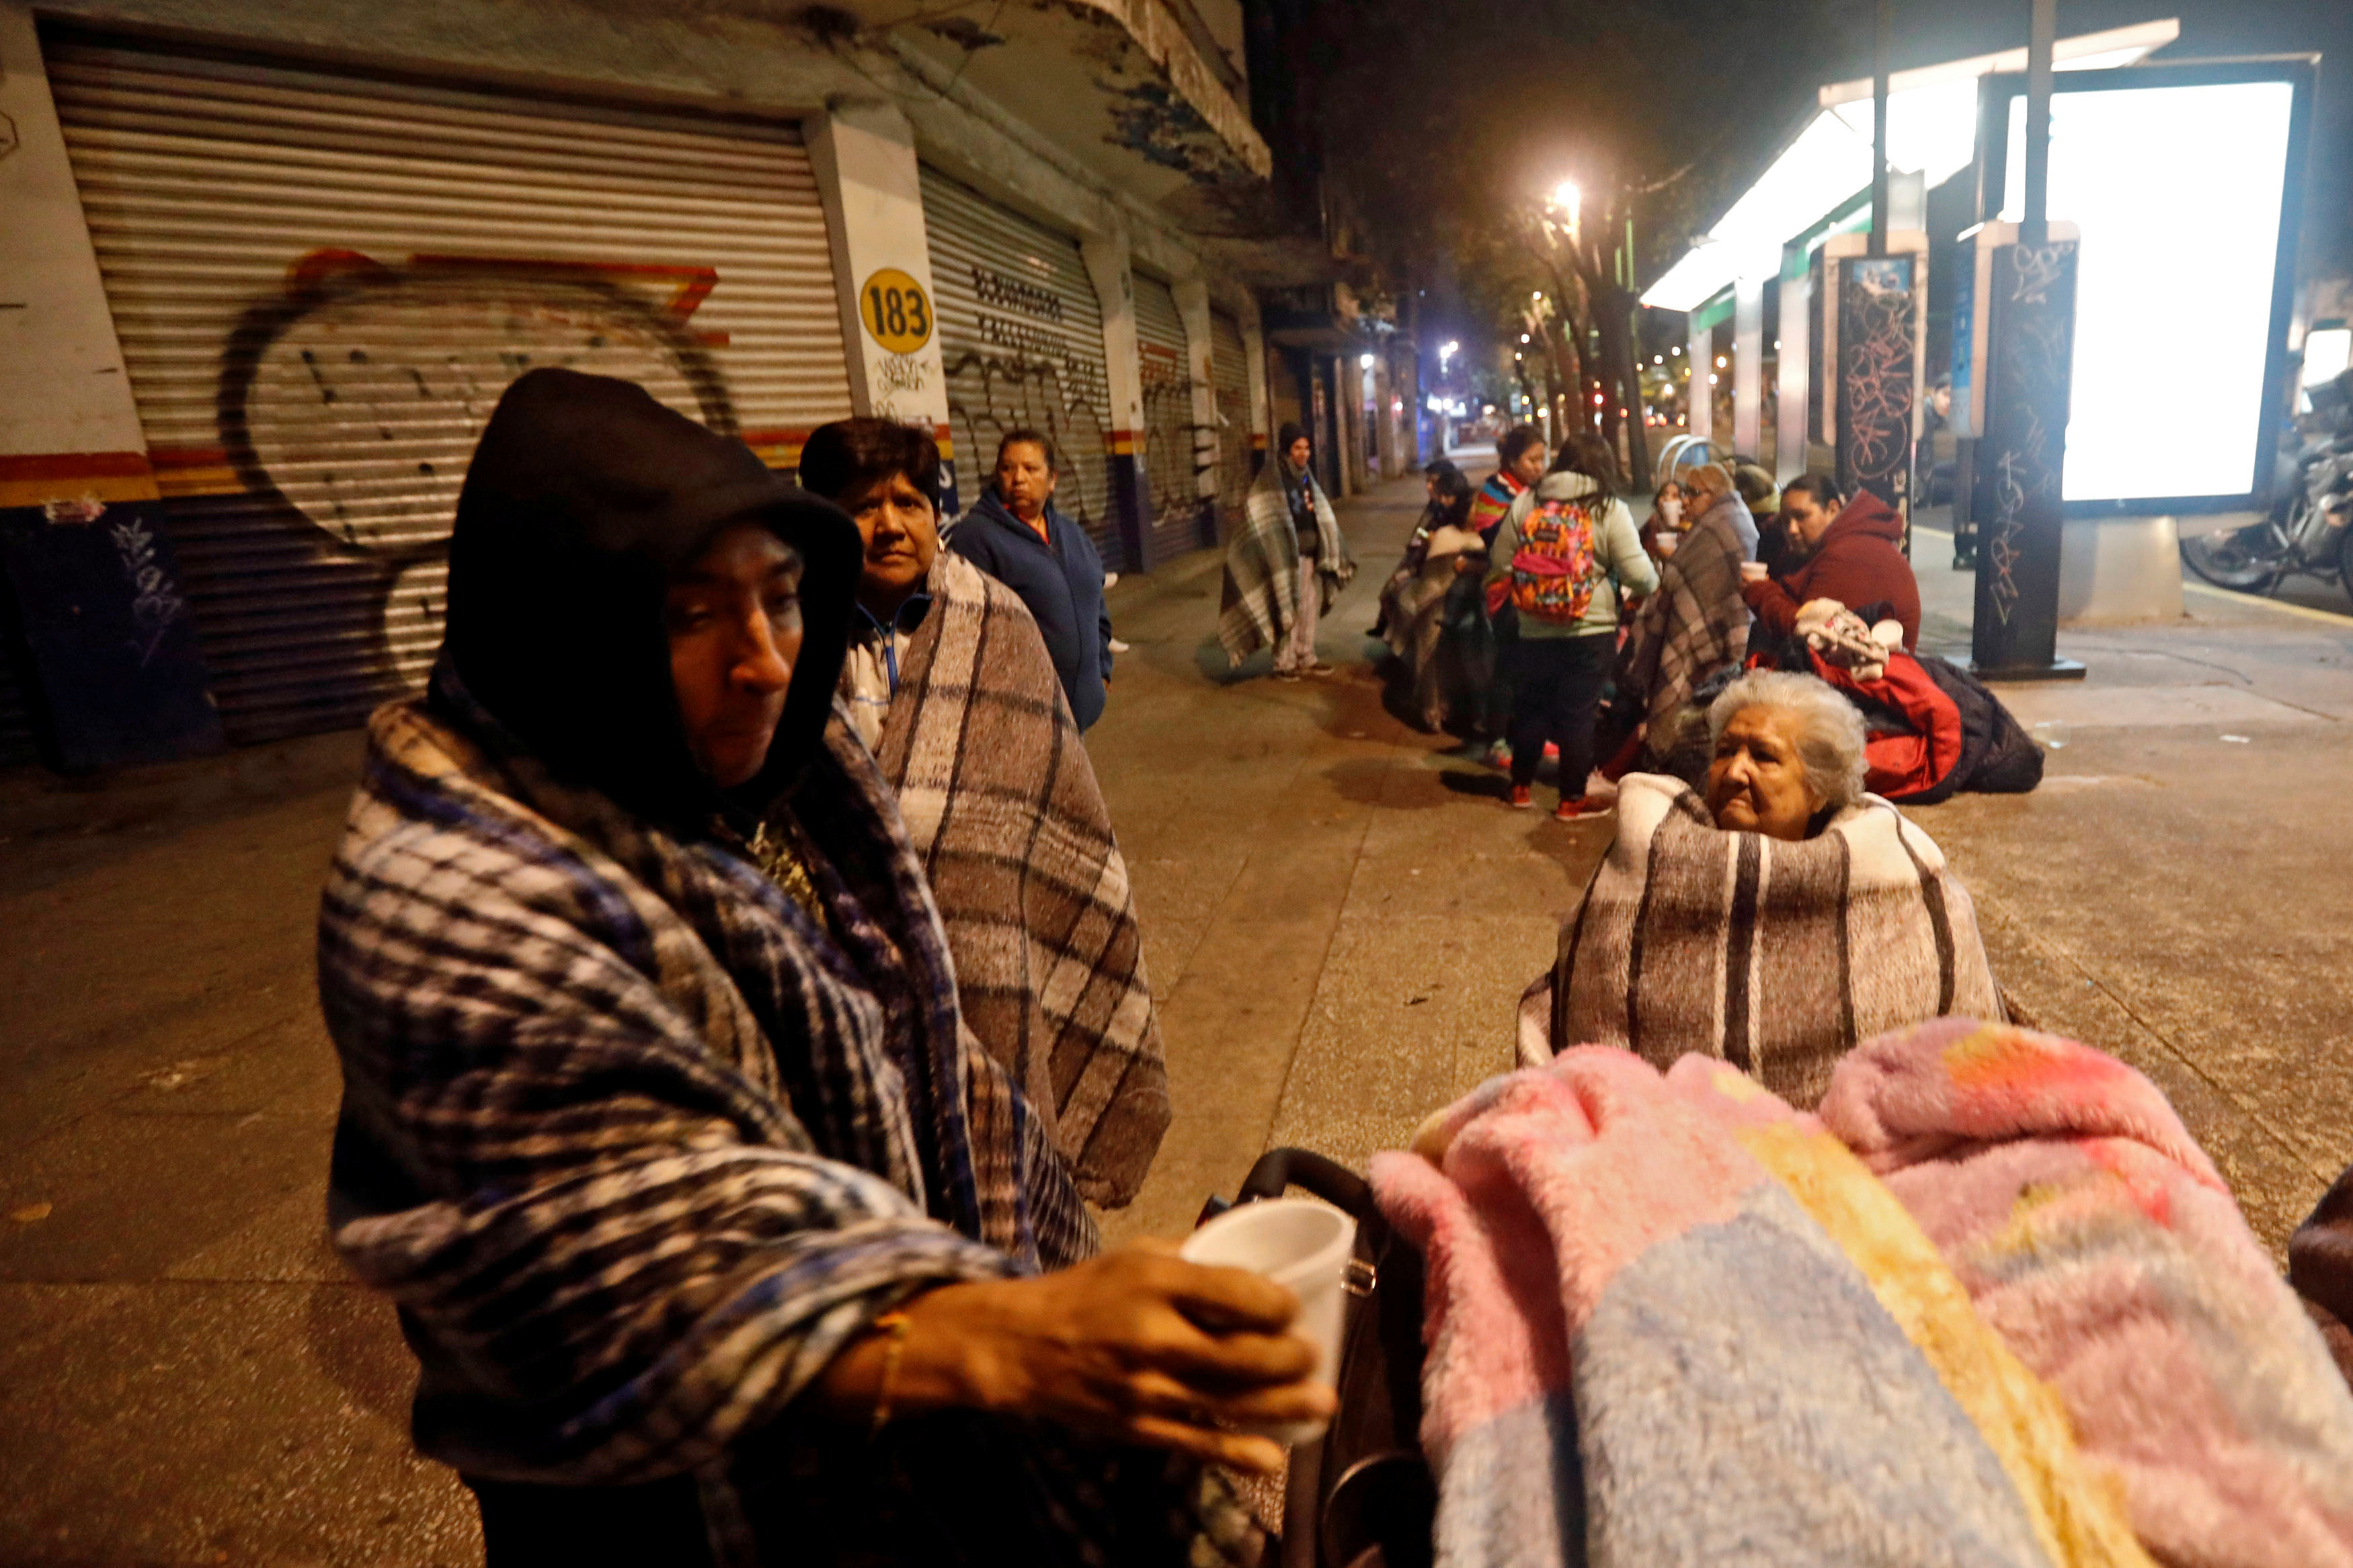 People gather on a street after an earthquake hit Mexico City, Mexico on Sept. 8, 2017. (REUTERS/Edgard Garrido)